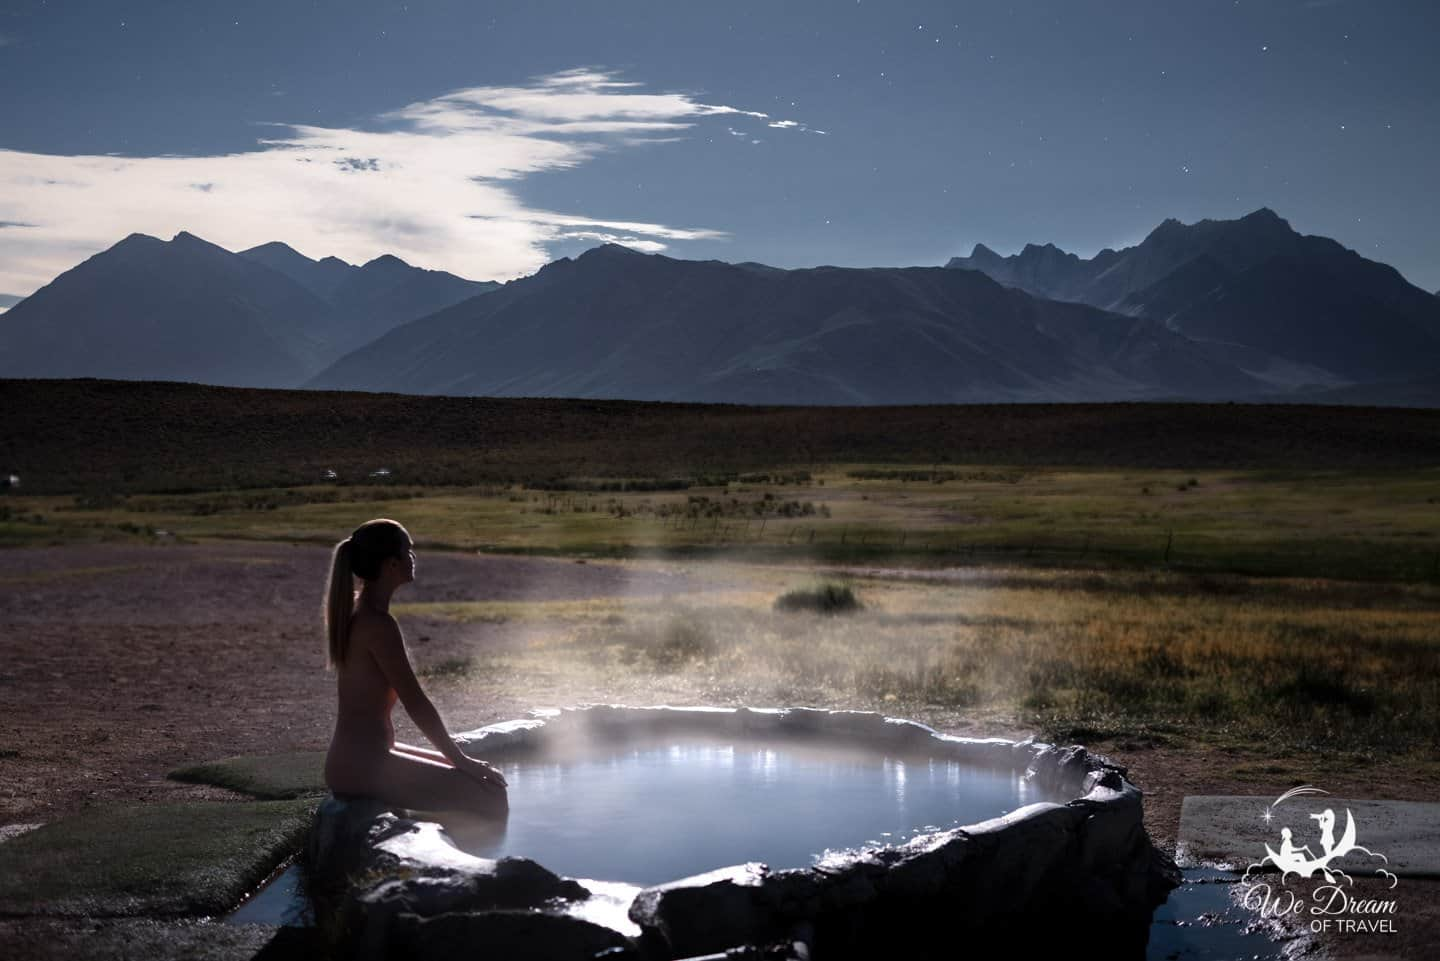 Clothing is optional at the Mammoth hot springs, as seen in this night photo at Pulkeys Pool.